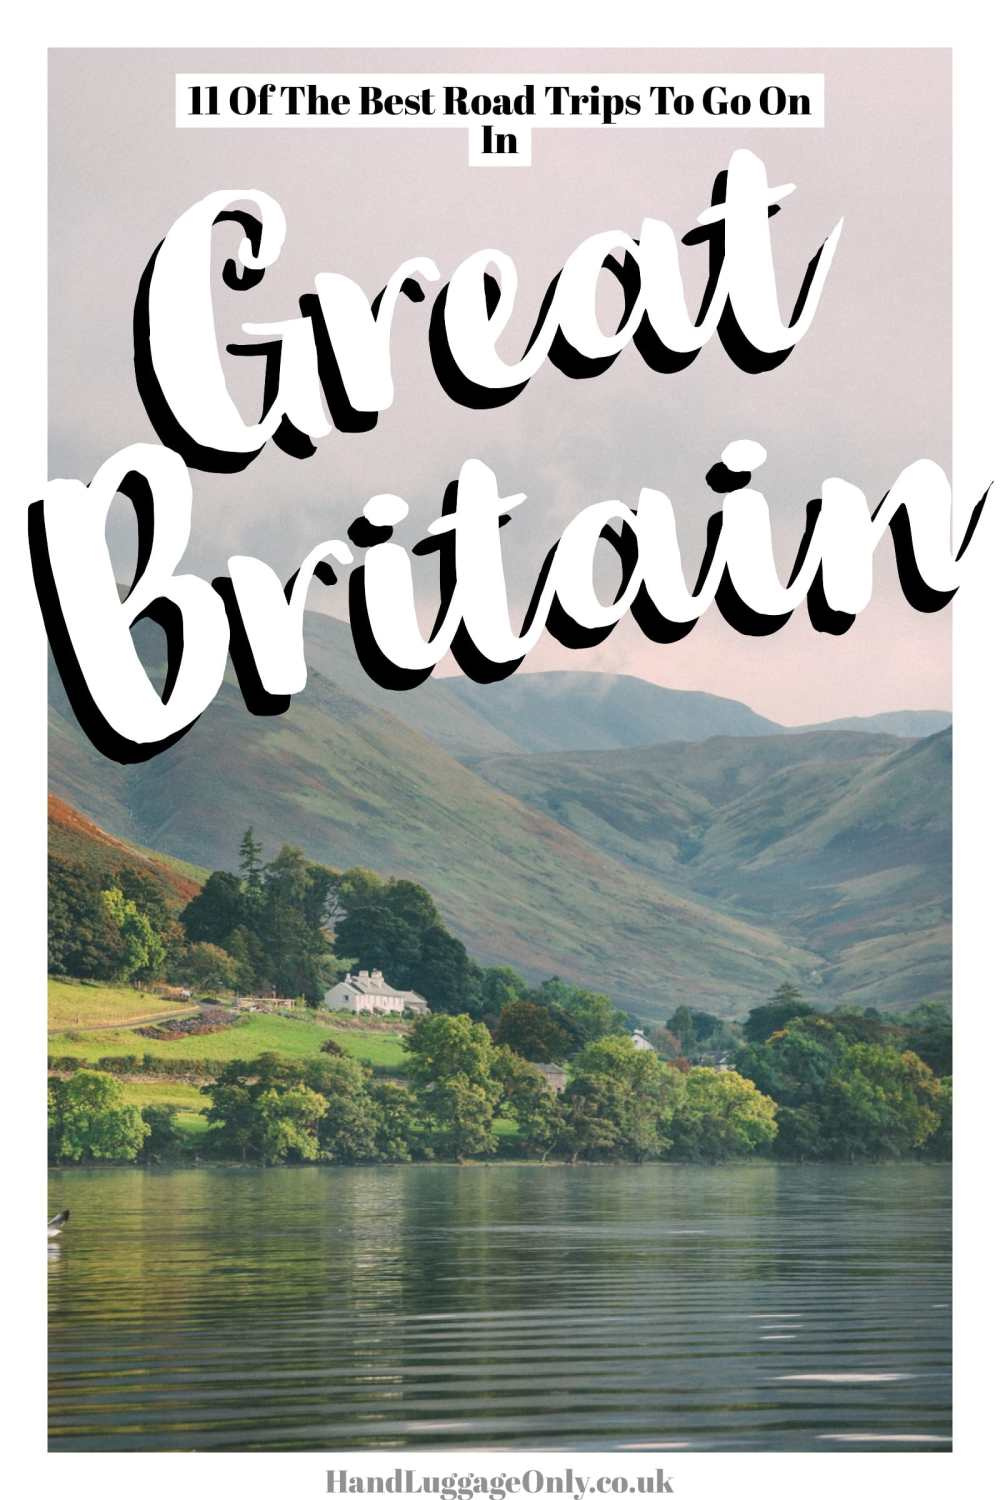 11 Of The Very Best Road Trips In Great Britain (1)